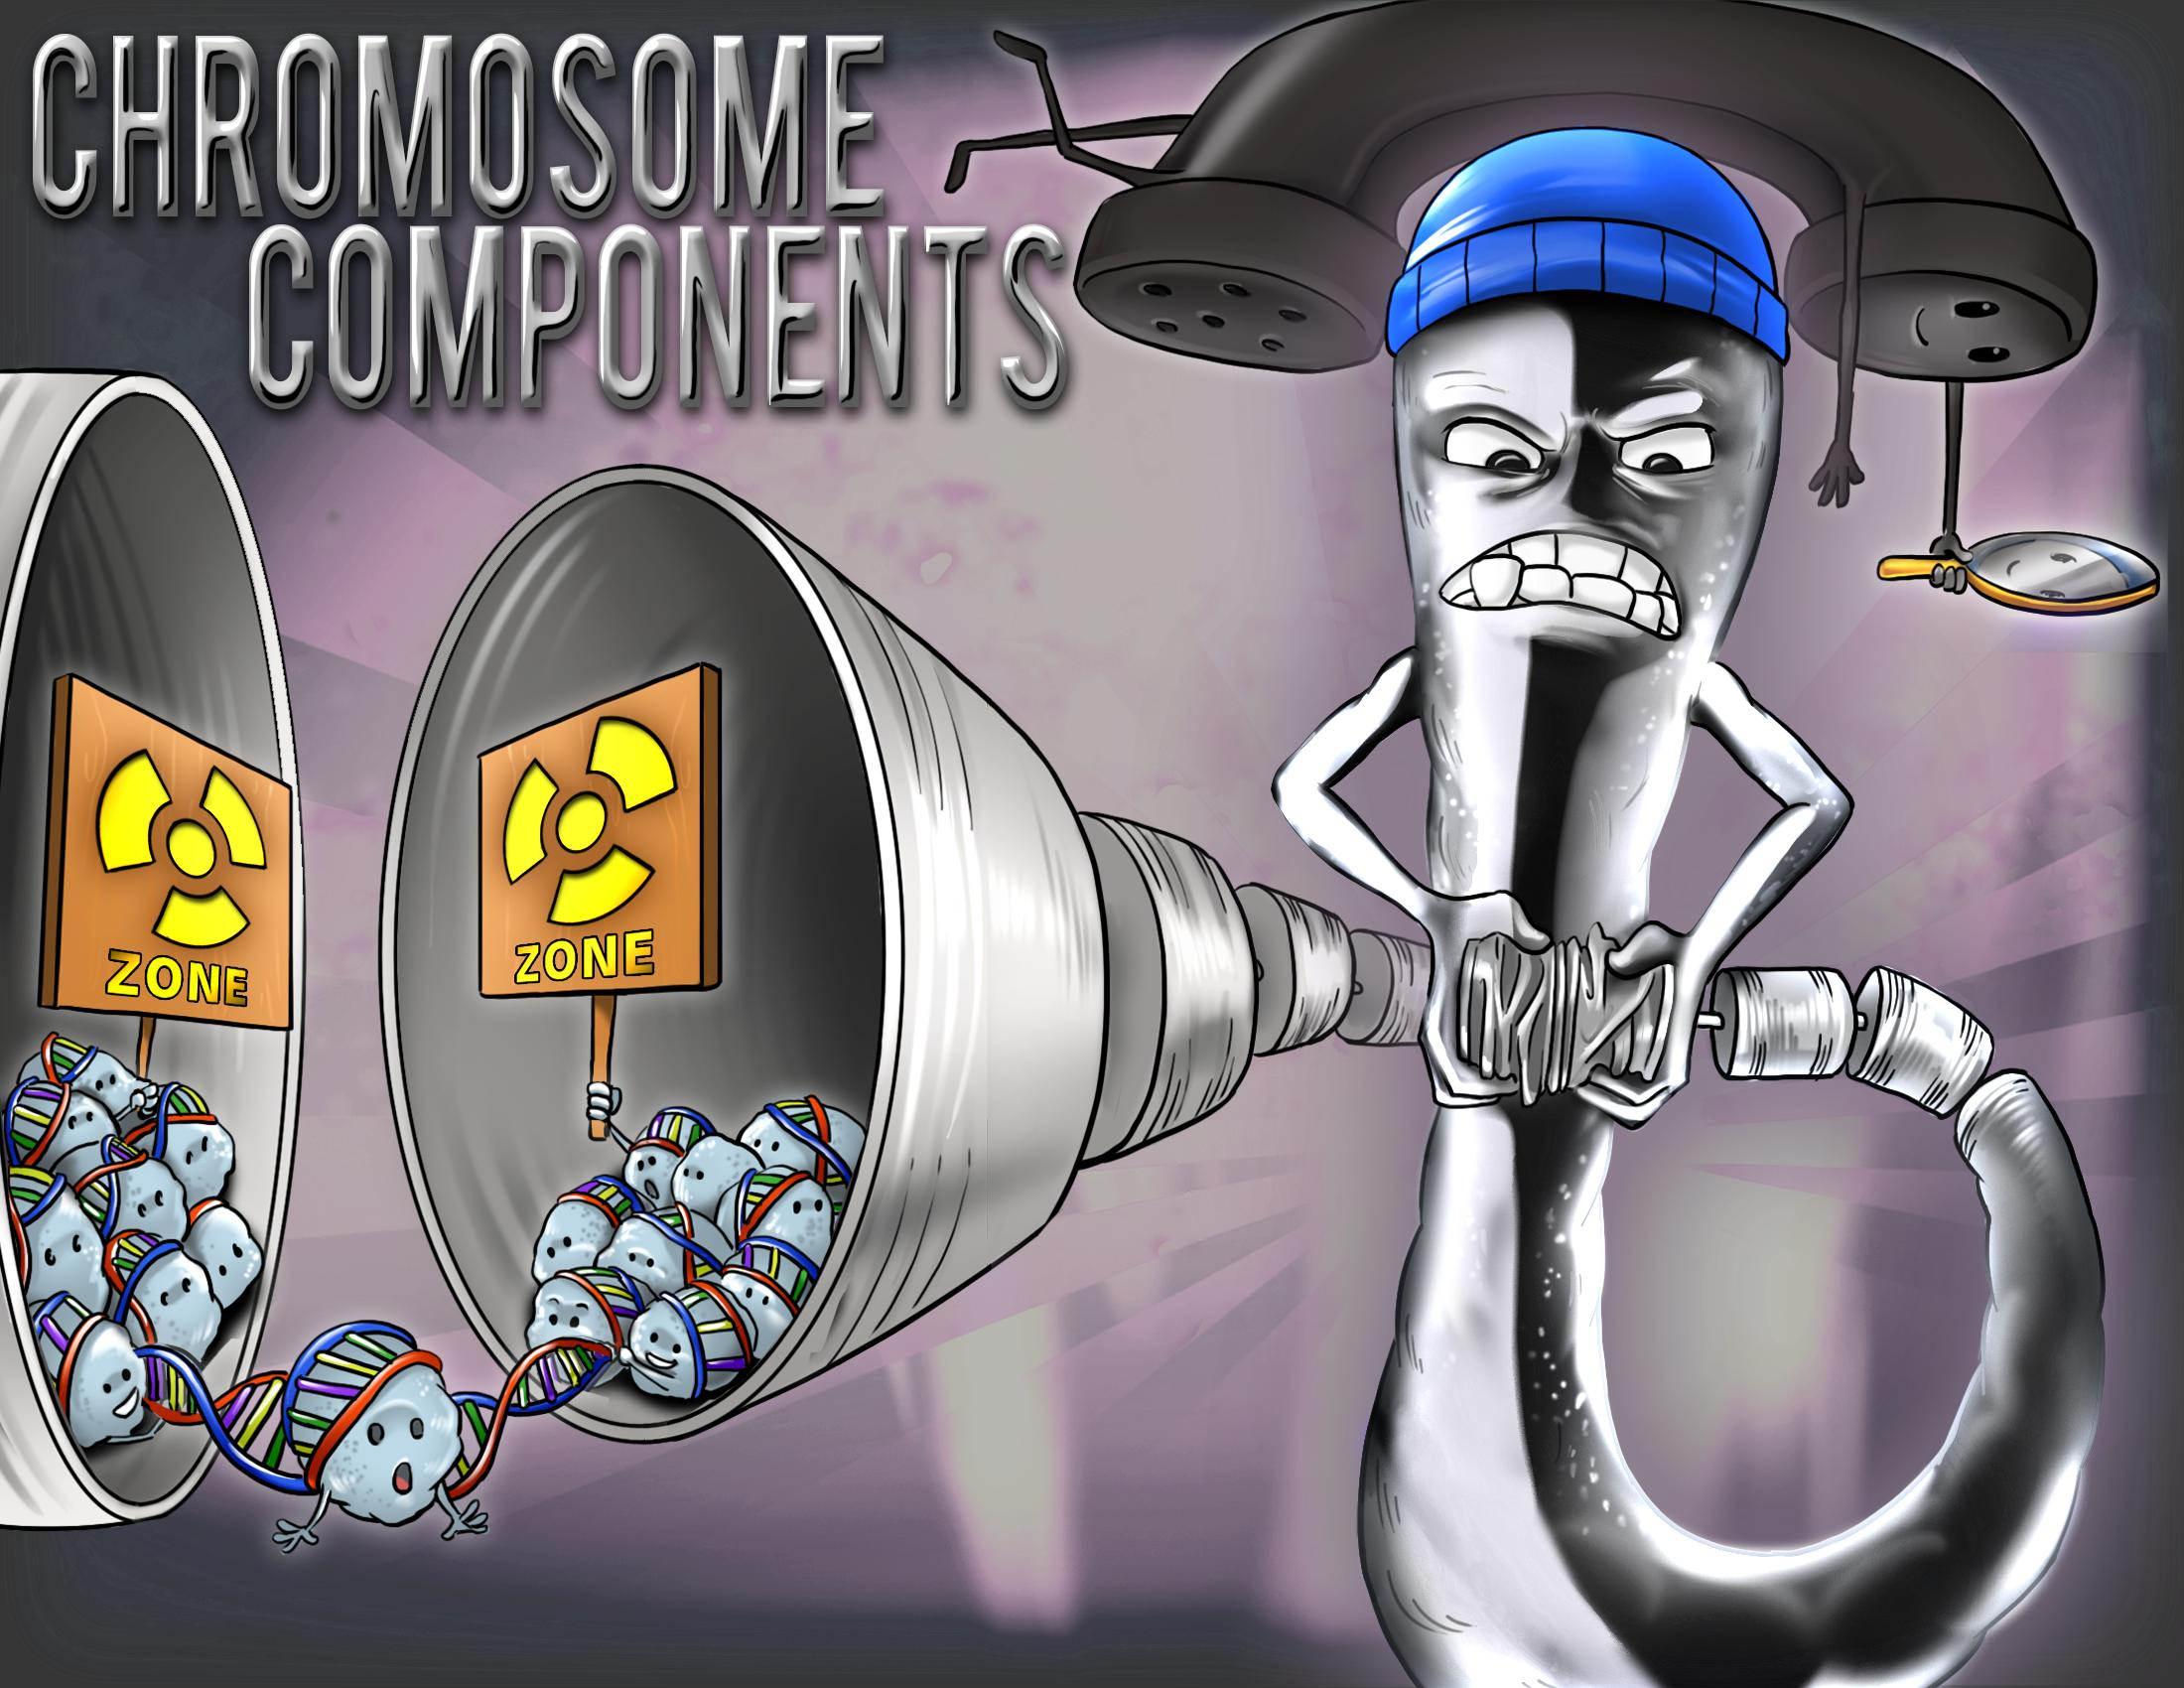 Chromosome Components